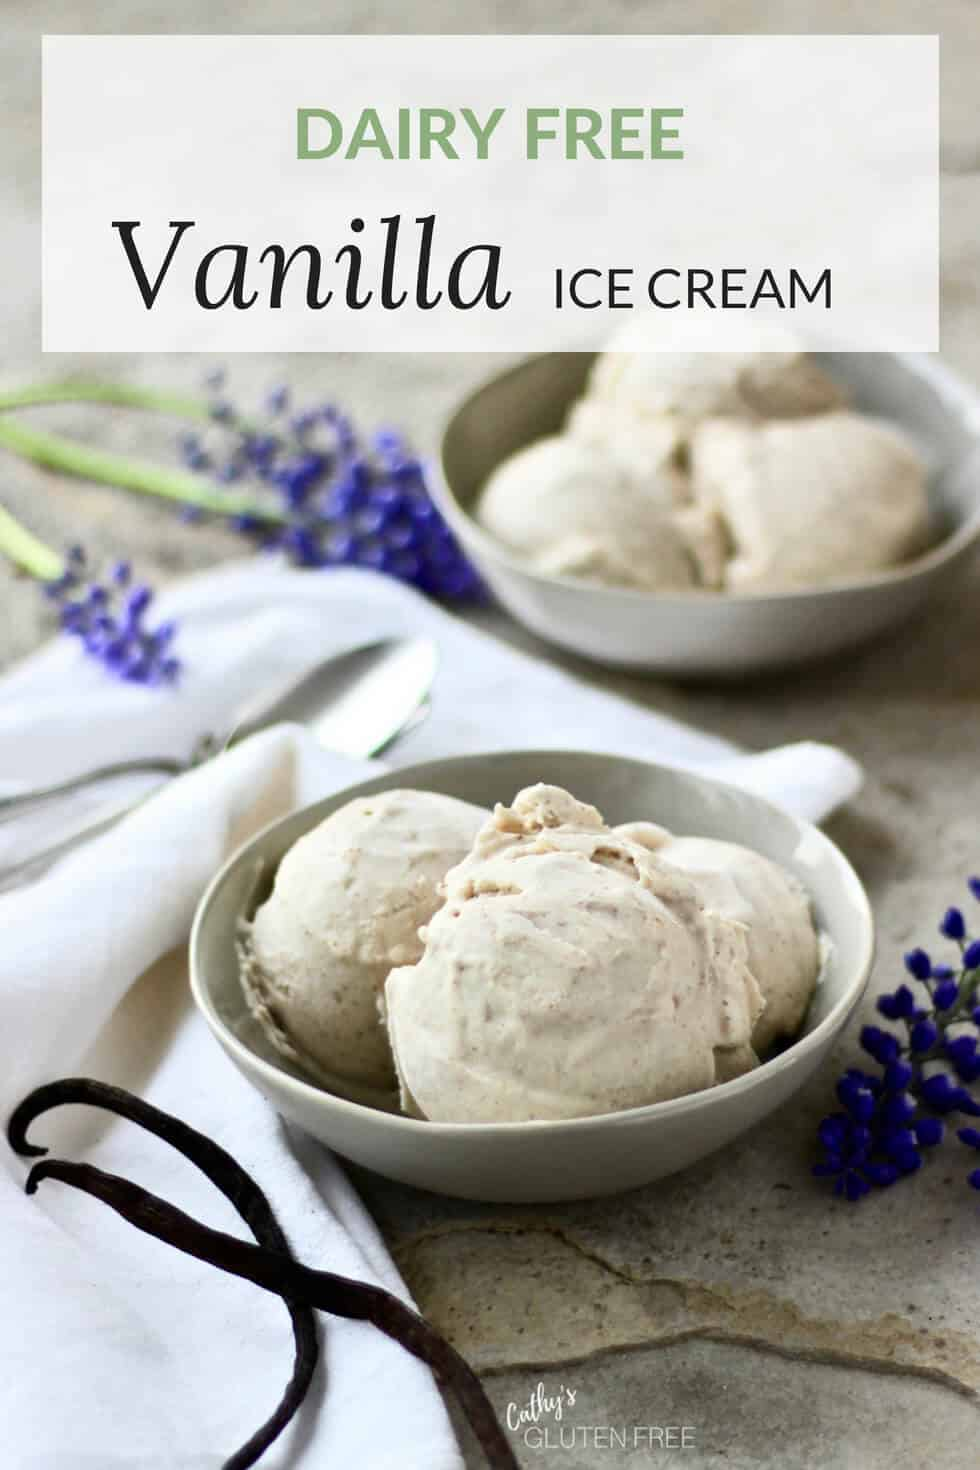 Homemade Dairy Free Vanilla Ice Cream #icecream #vanilla #dairyfree #glutenfree #paleo